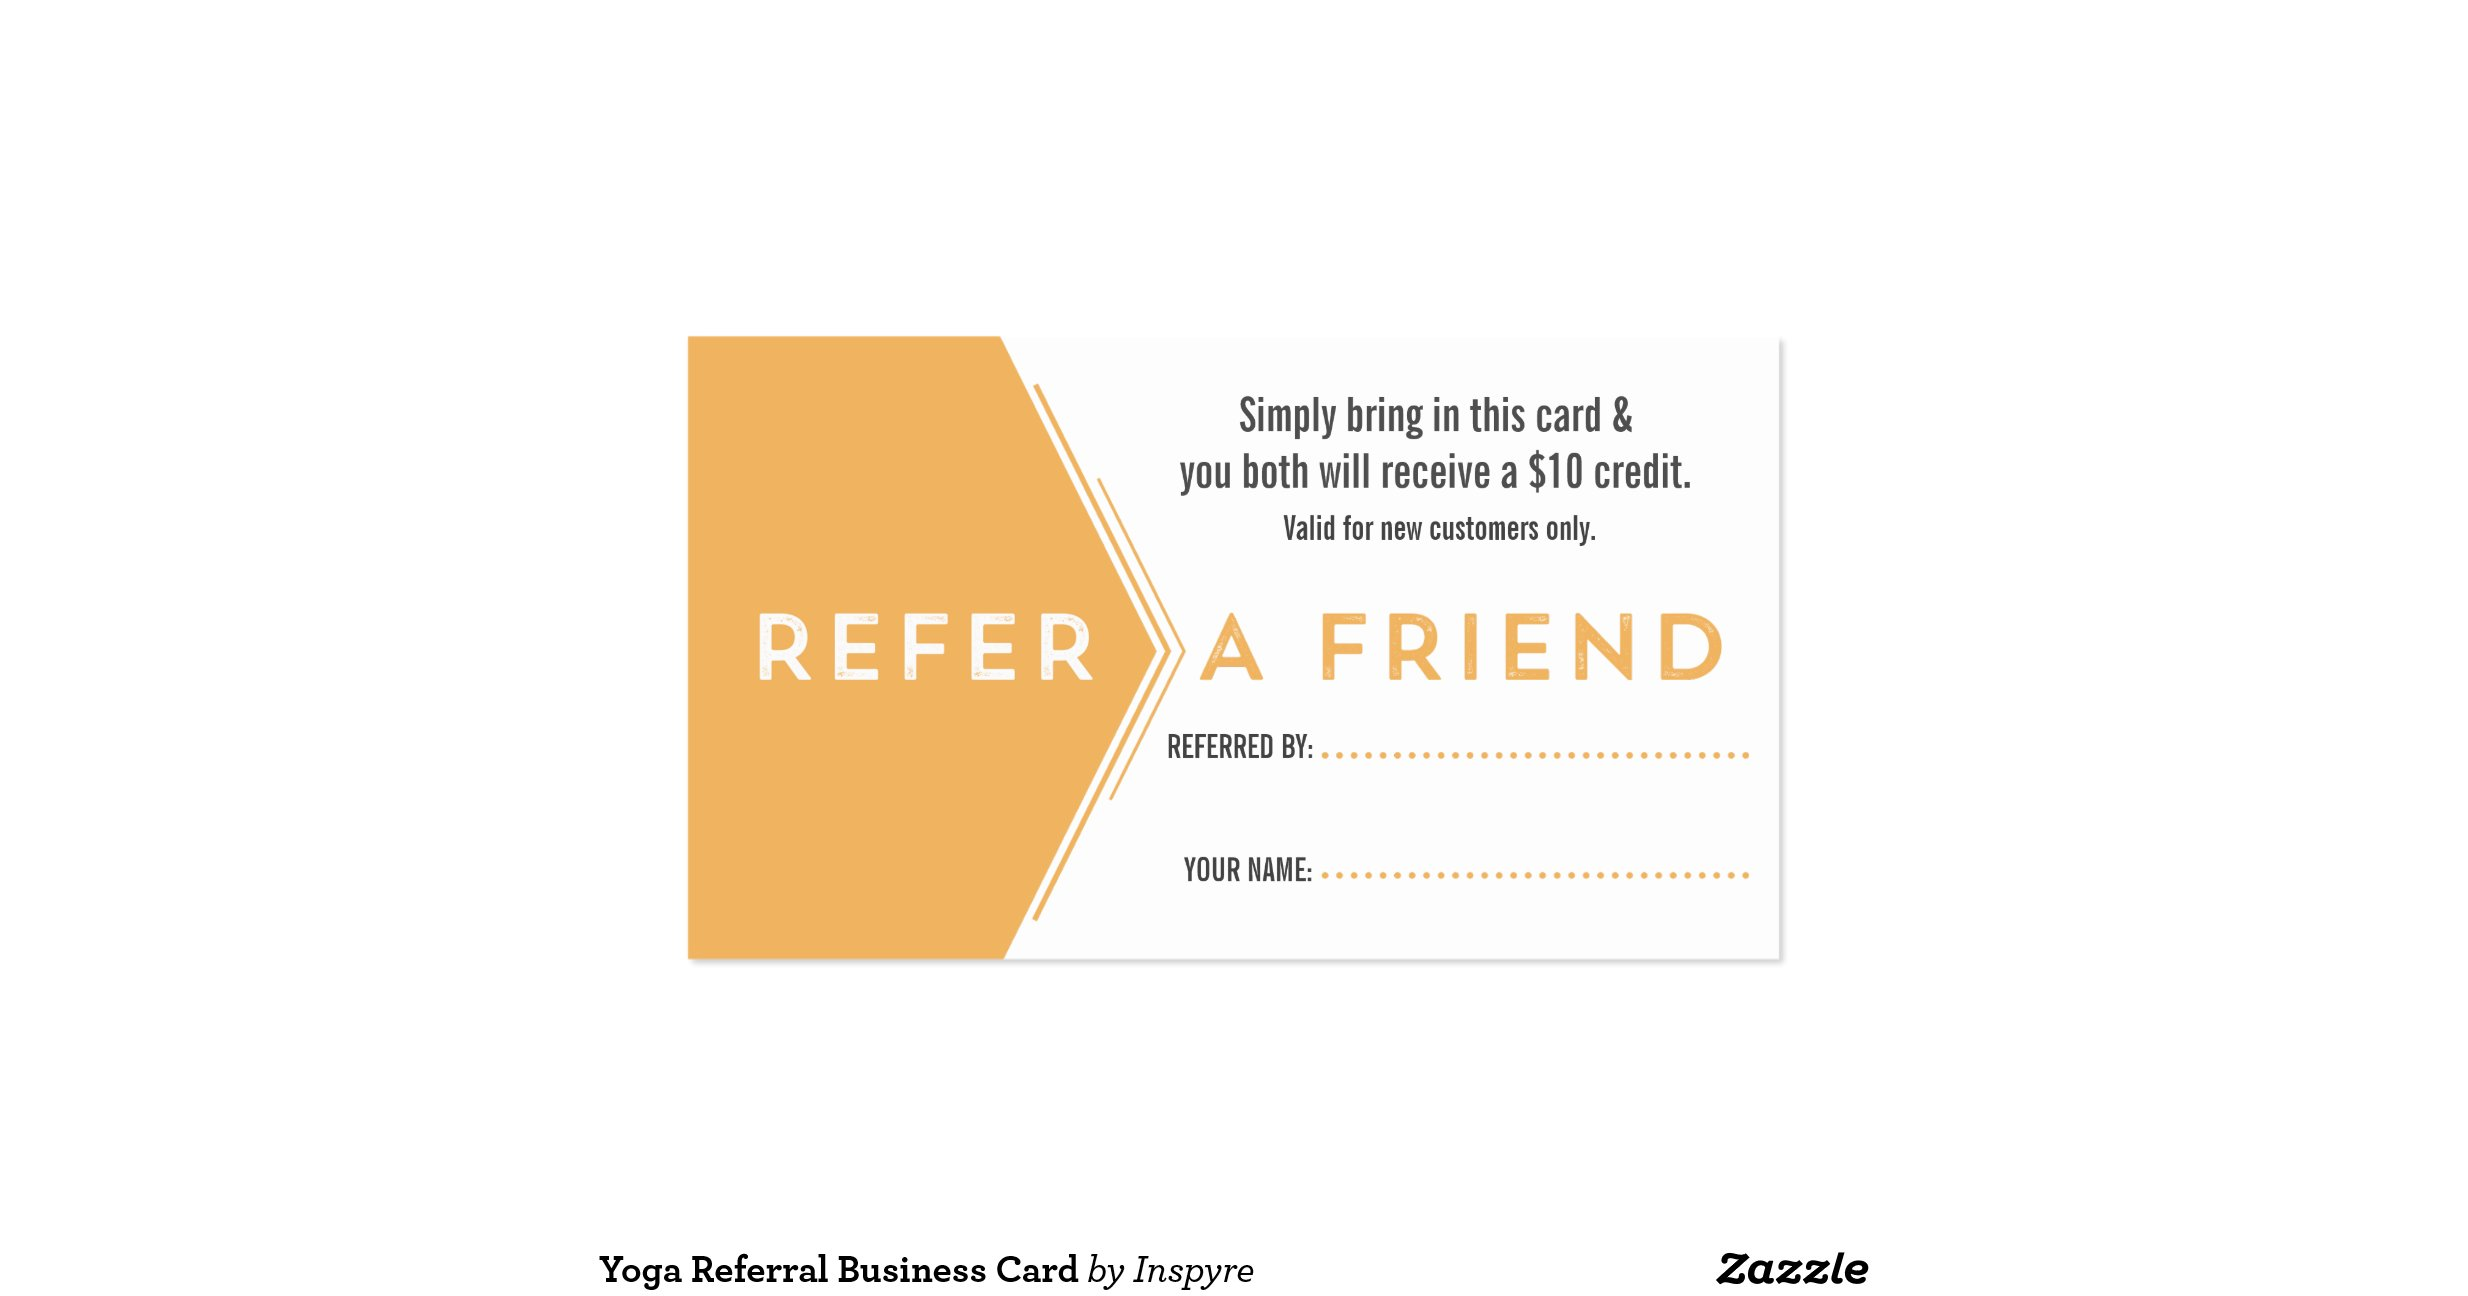 Yoga referral business card for Zazzle referral cards